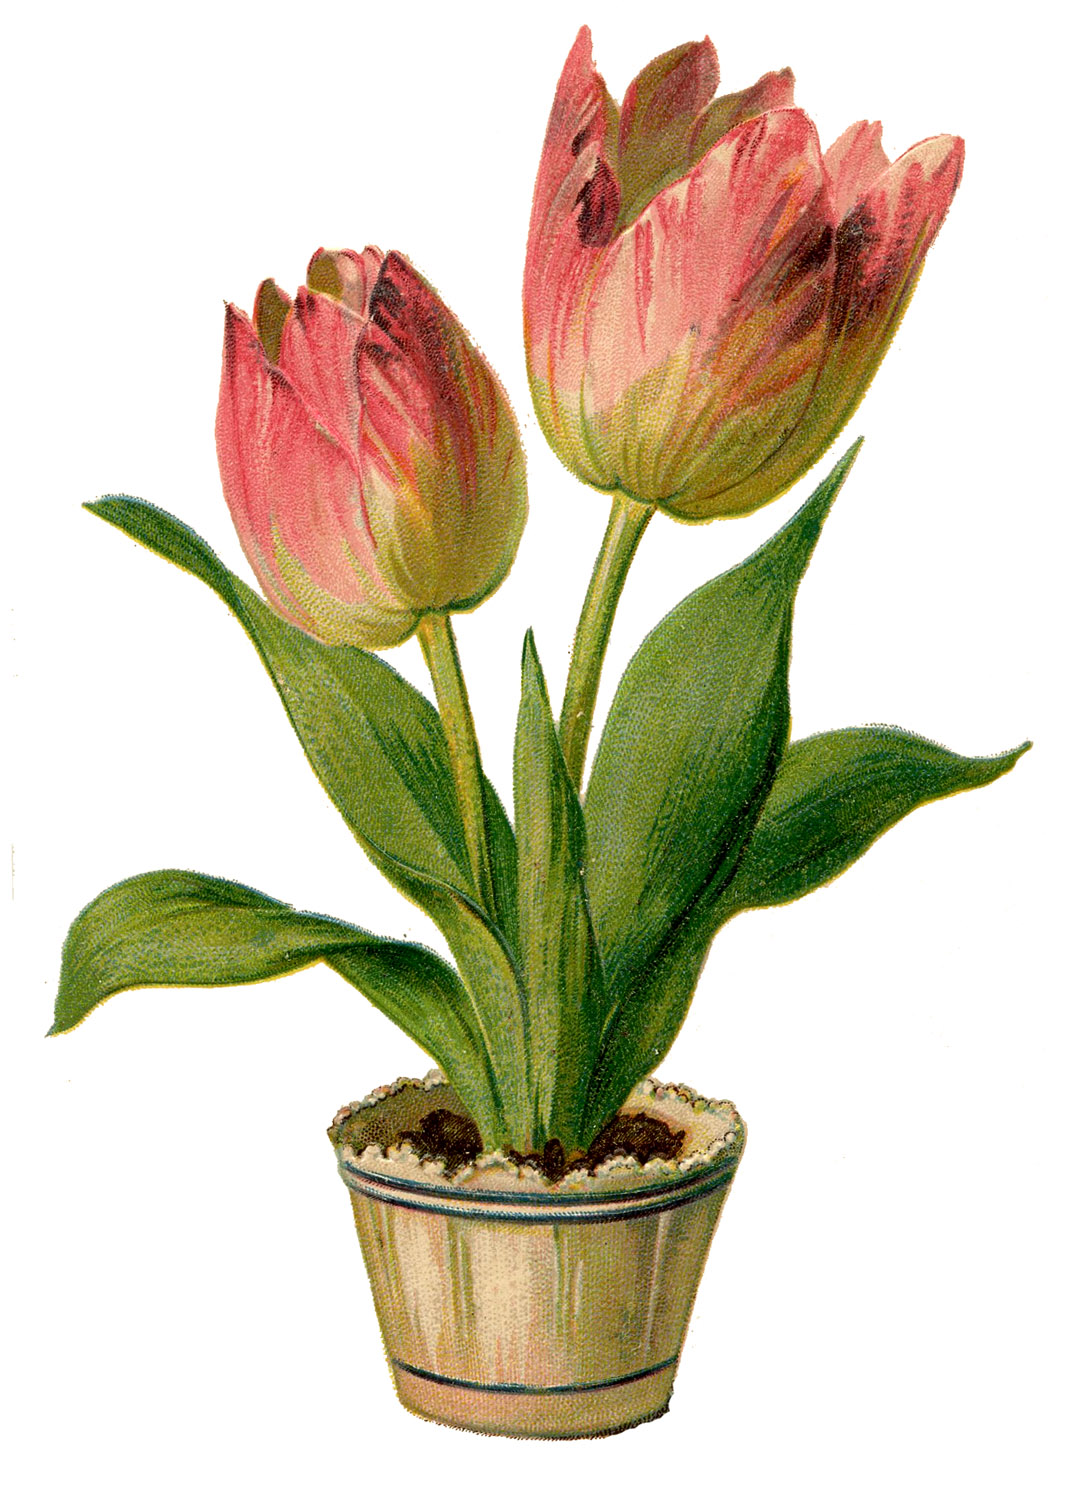 http://thegraphicsfairy.com/wp-content/uploads/2013/05/Tulips-Pink-GraphicsFairy1.jpg